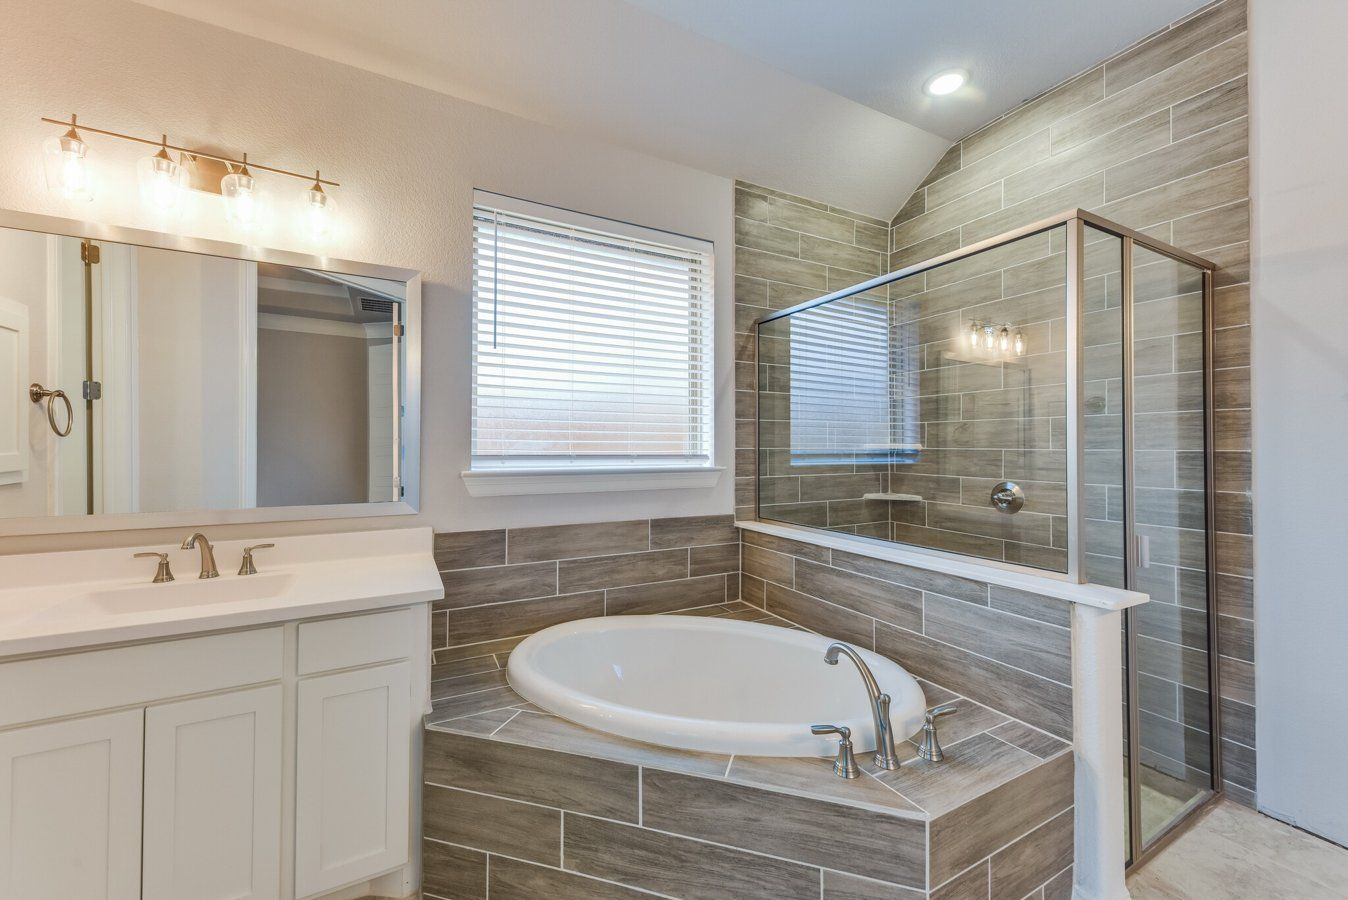 Bathroom featured in the Ashland By Chesmar Homes in Dallas, TX